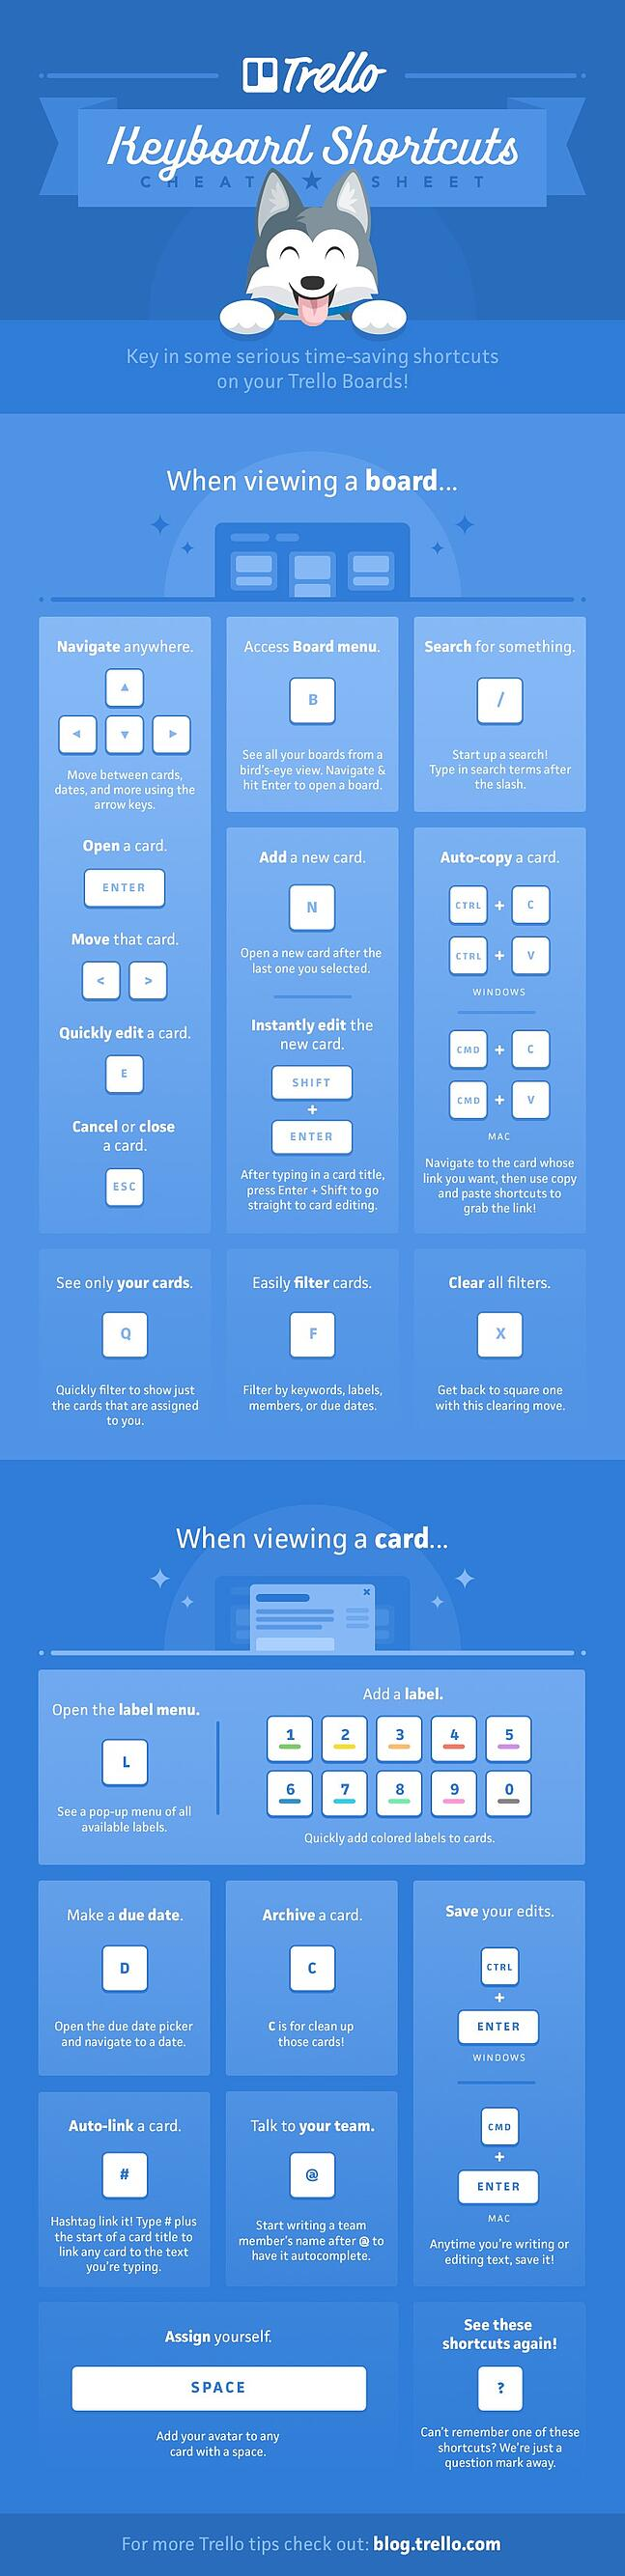 Trello Keyboard Shortcuts Cheat Sheet